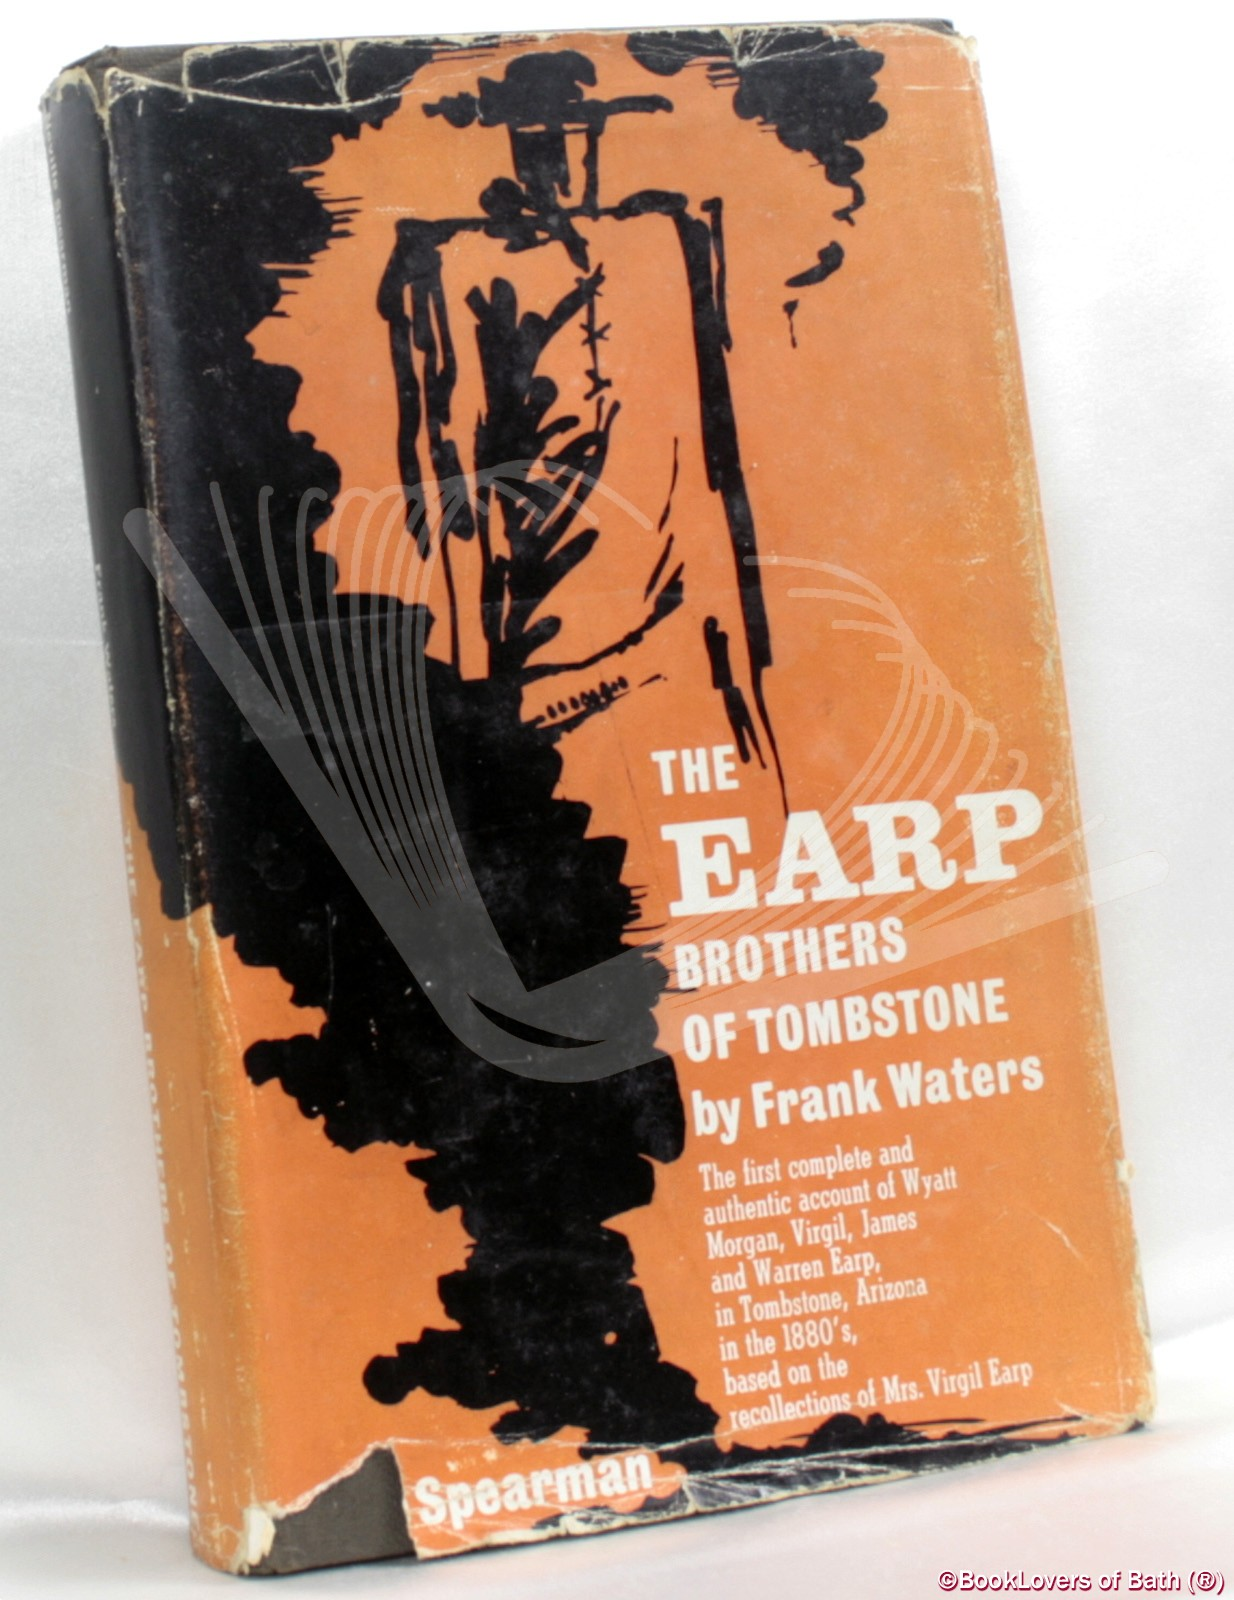 The Earp Brothers of Tombstone - Frank Waters